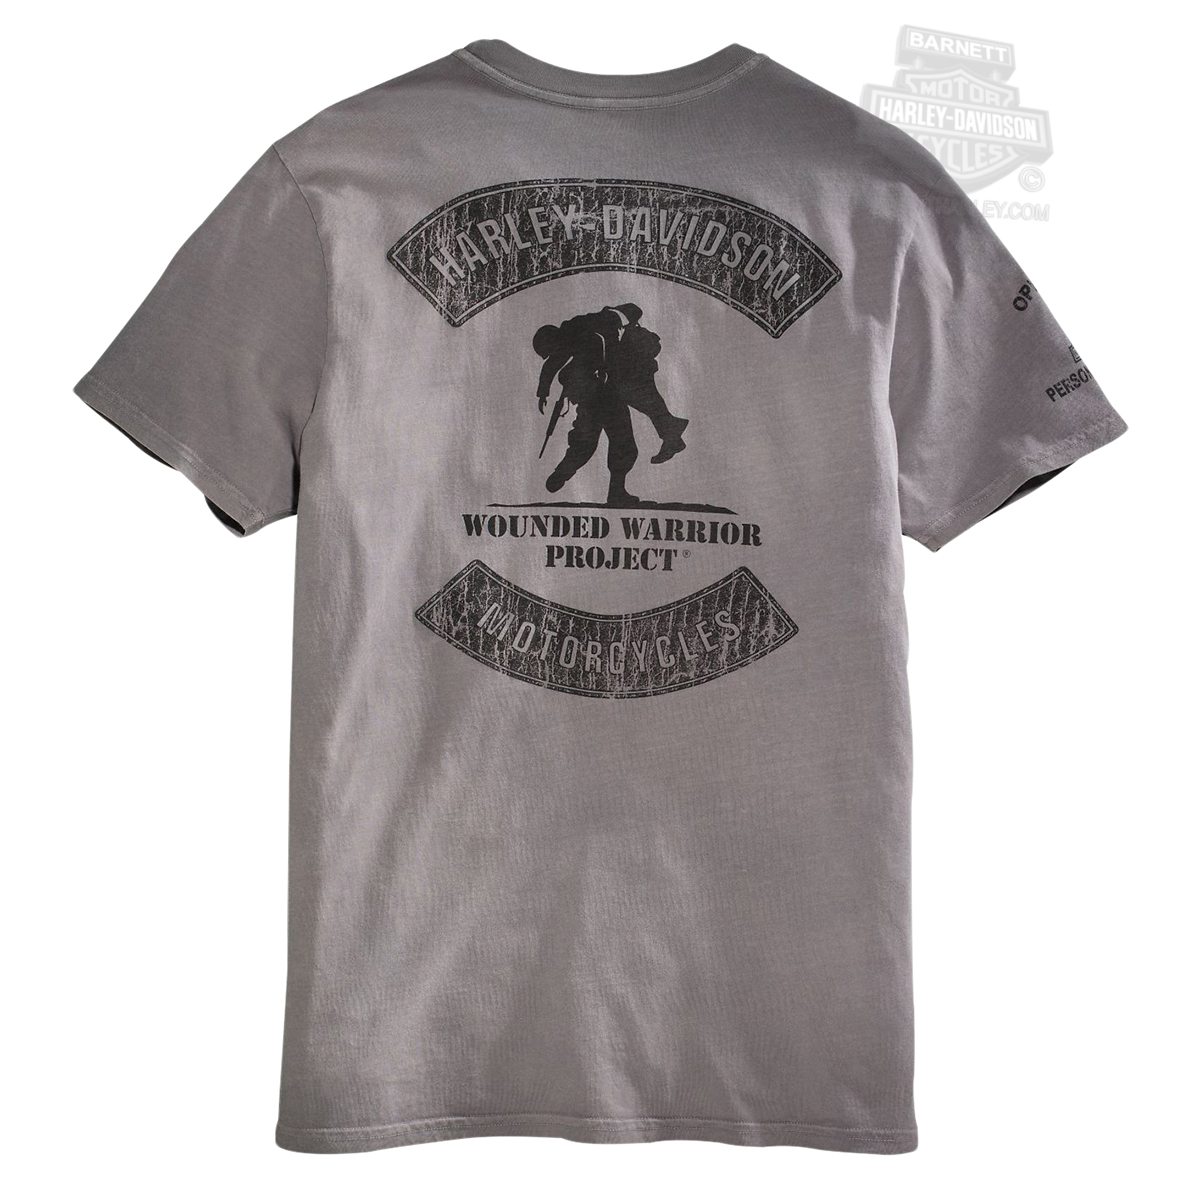 wounded warrior project apparel Wounded warrior project amazonsmile is a simple and automatic way for you to support wounded warrior project ® (wwp) every time you shop, at no cost to you.